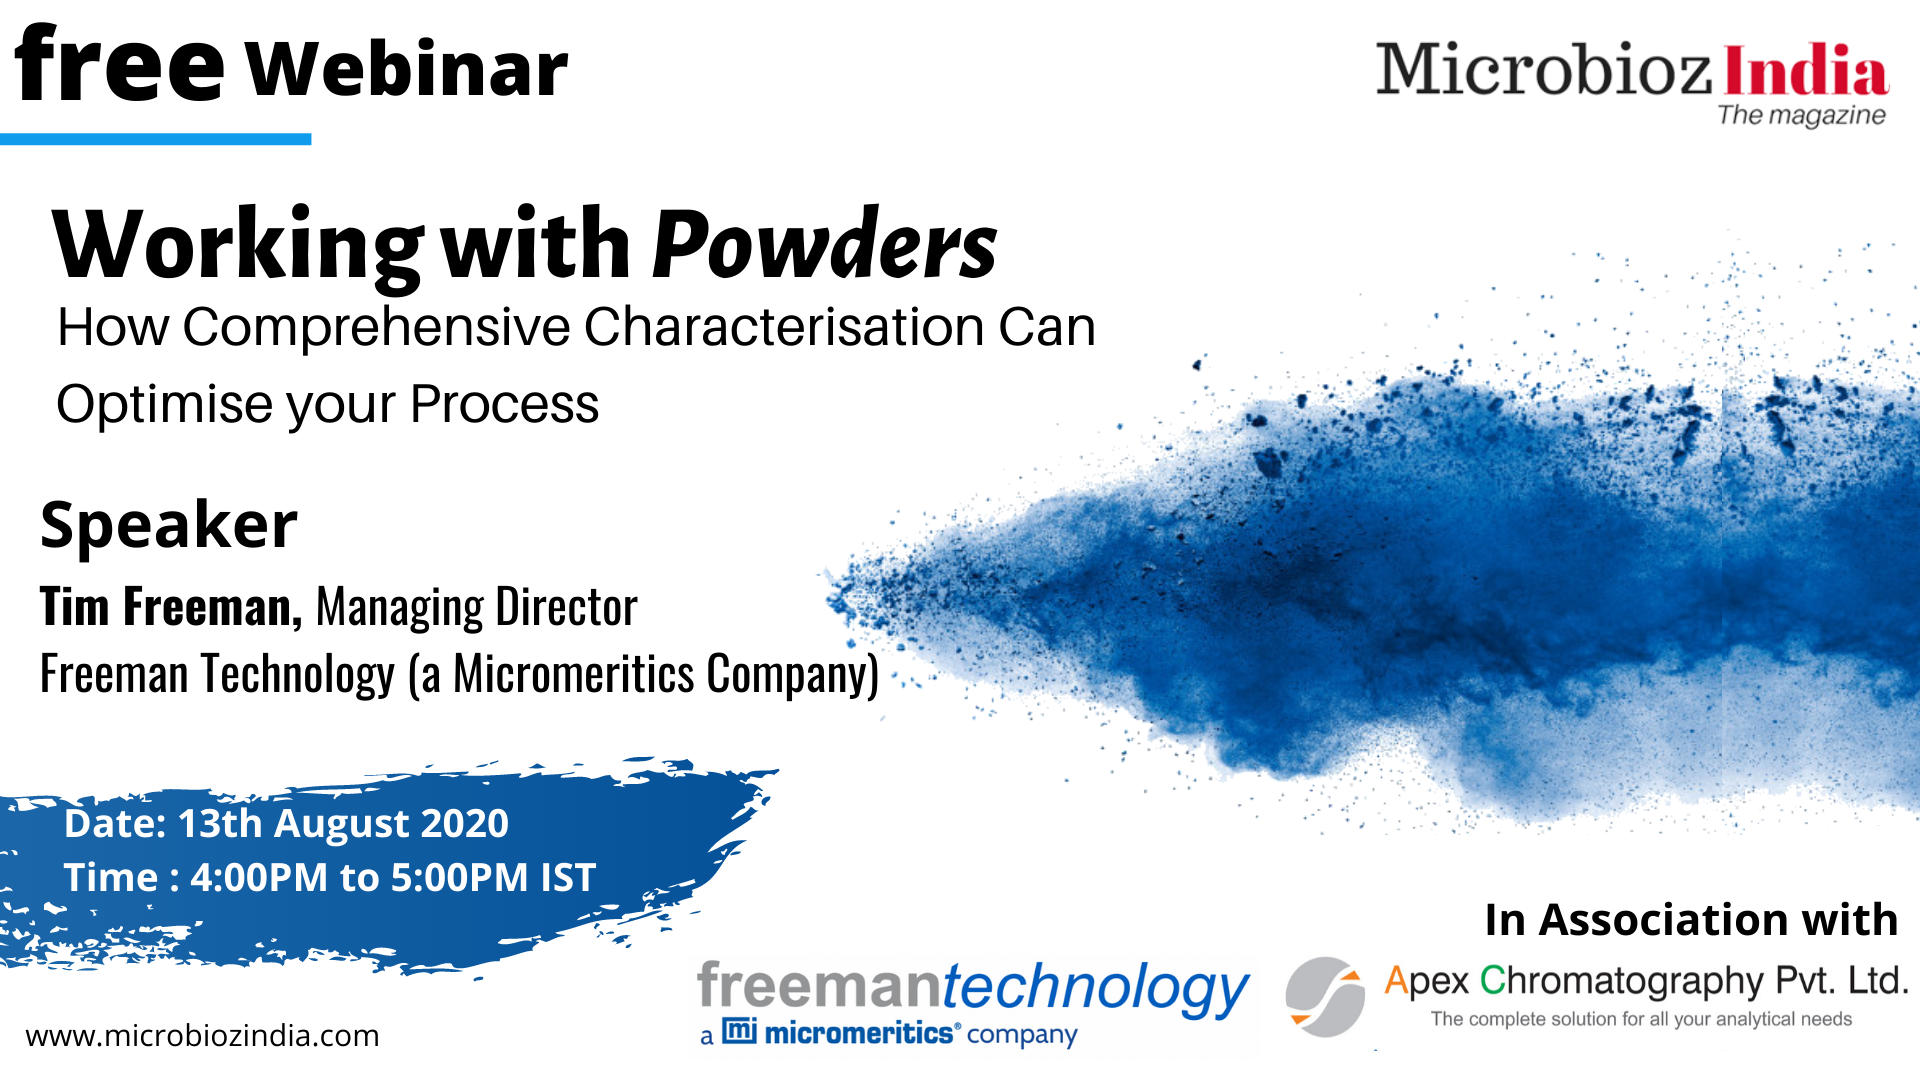 Join our distributors Apex Chromatography for a working with powders webinar